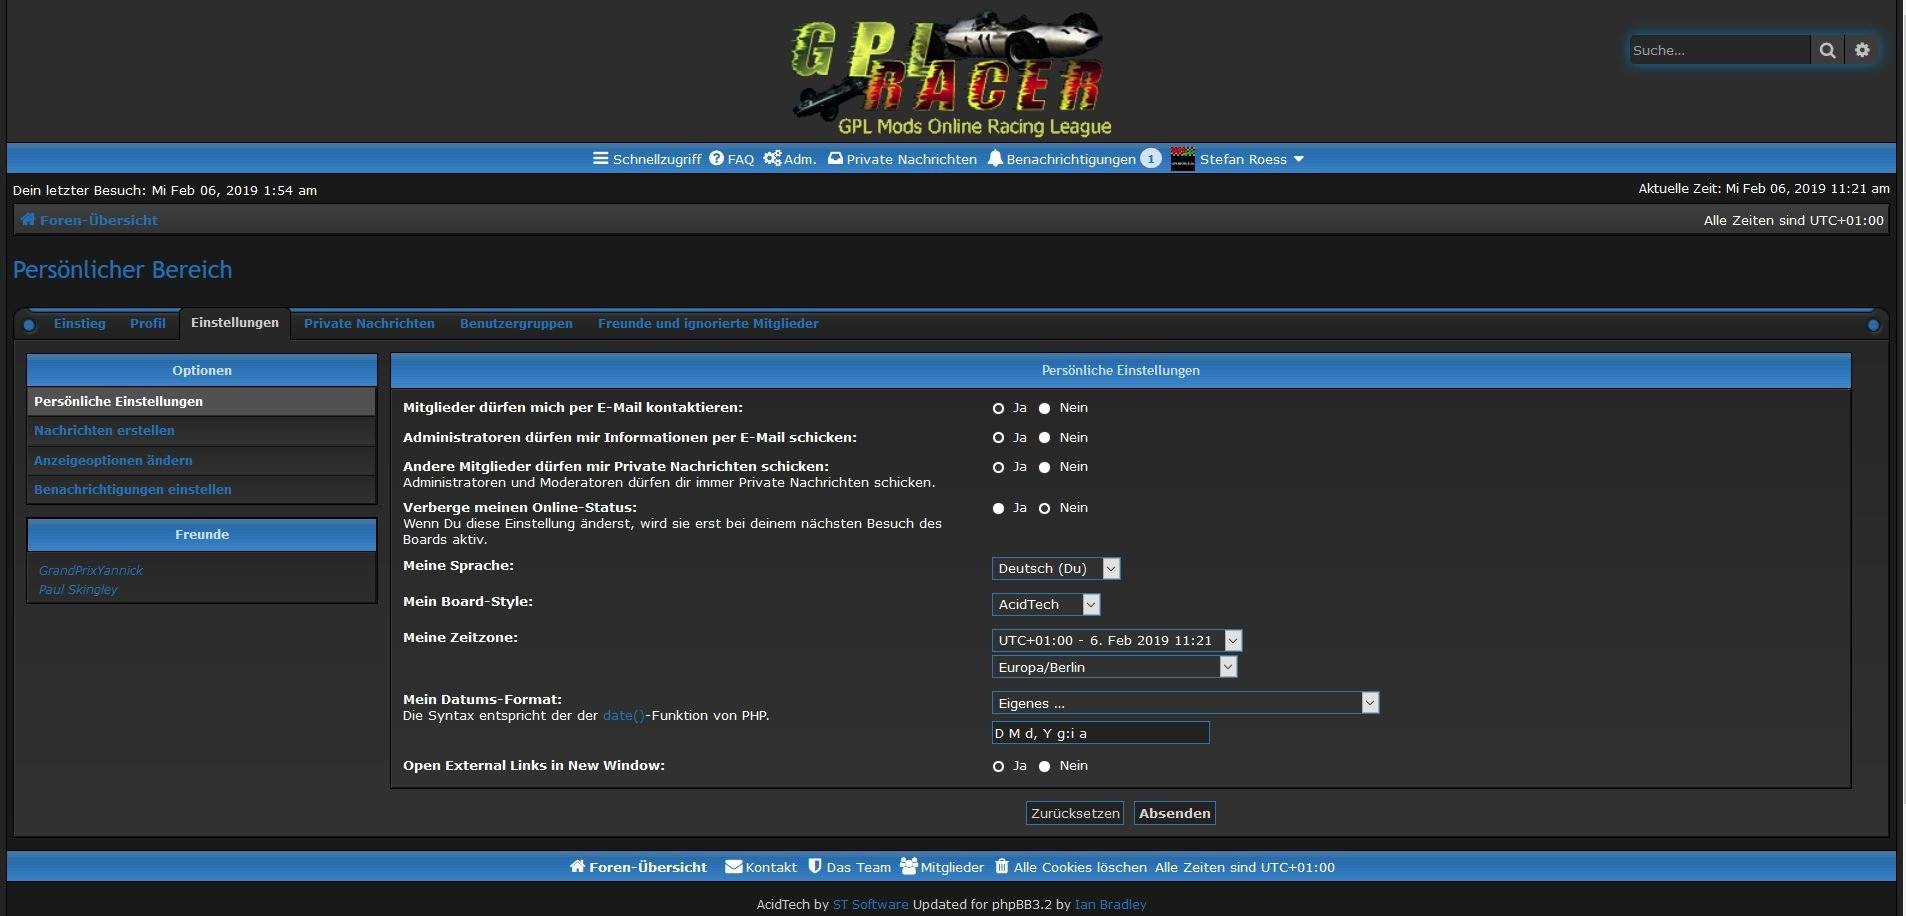 AcidTech_Board-Style_GPLRACER_screen.JPG